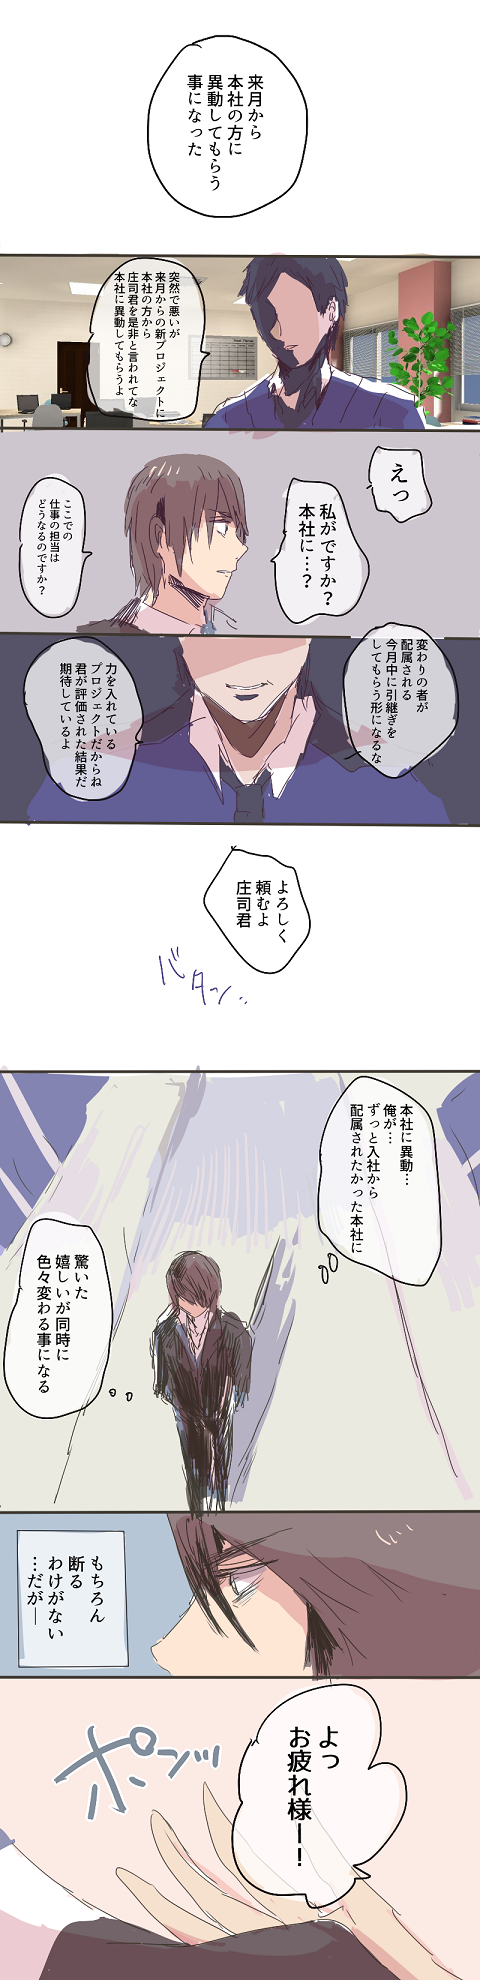 20170111204221846.png